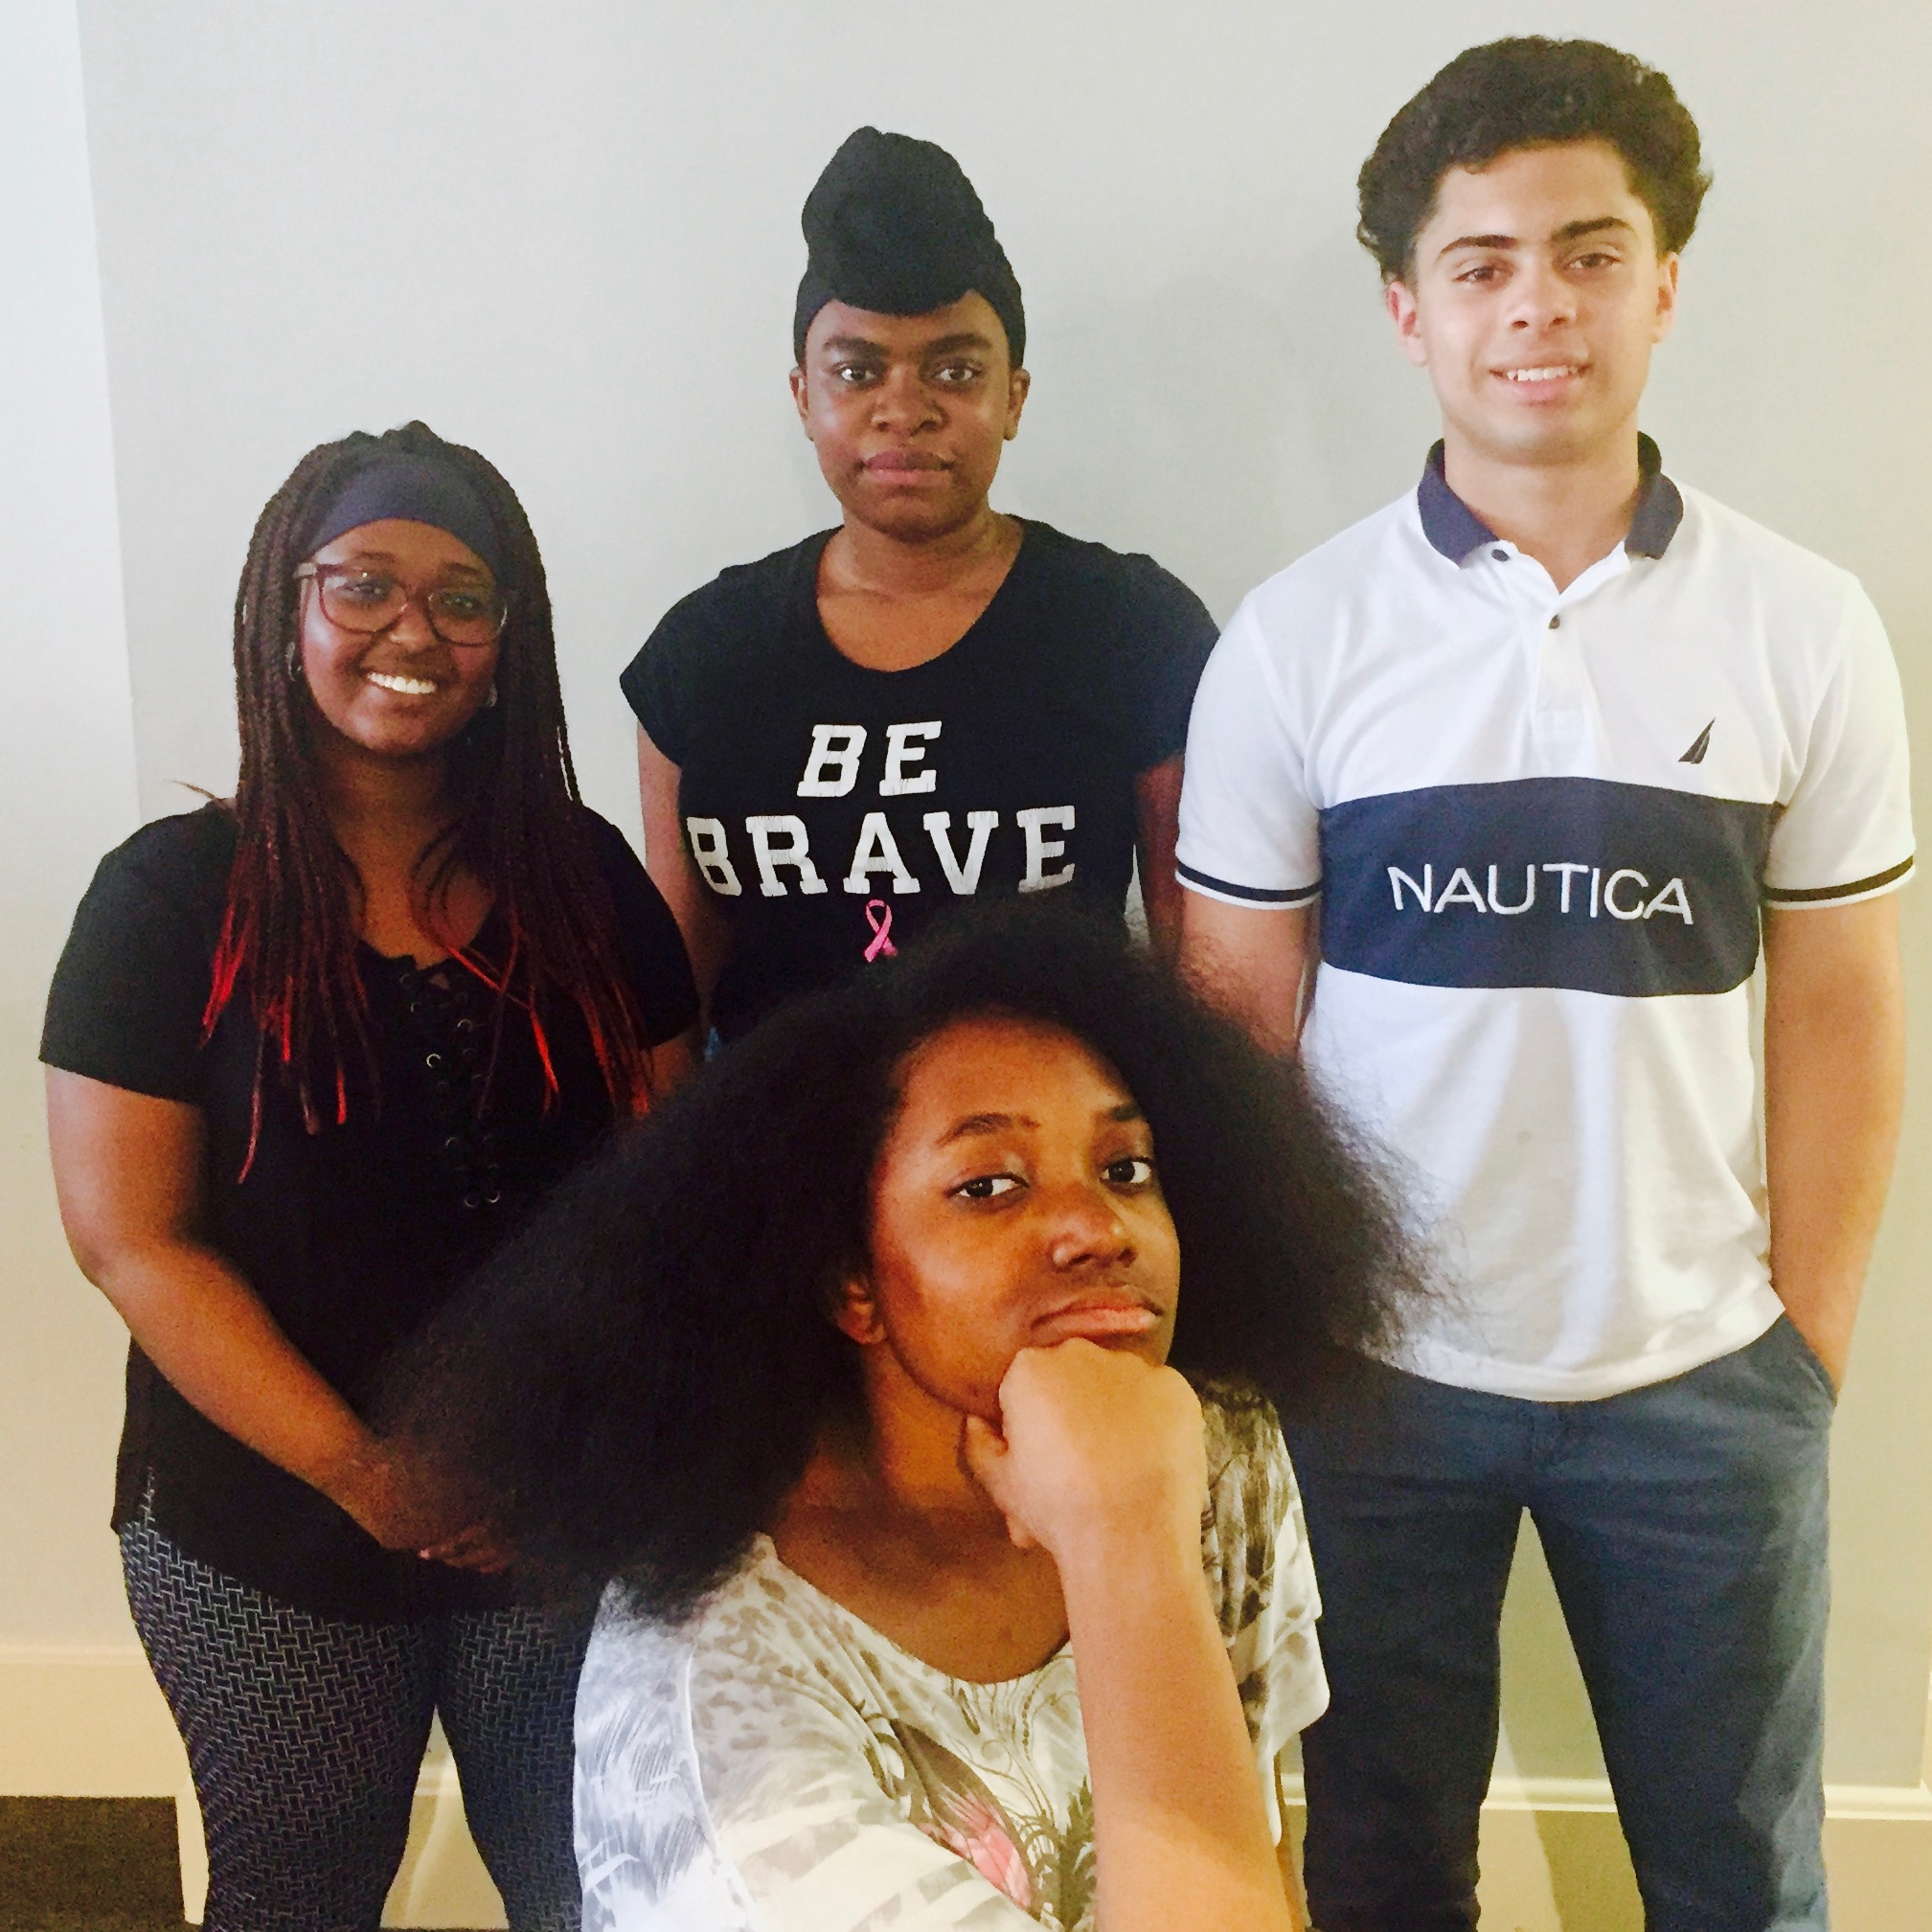 Clockwise from left: Briyanah, Benny, Sebastian, and Mia. Four New Haven, CT public school students involved with the group PREST: People for race and ethnicity studies.